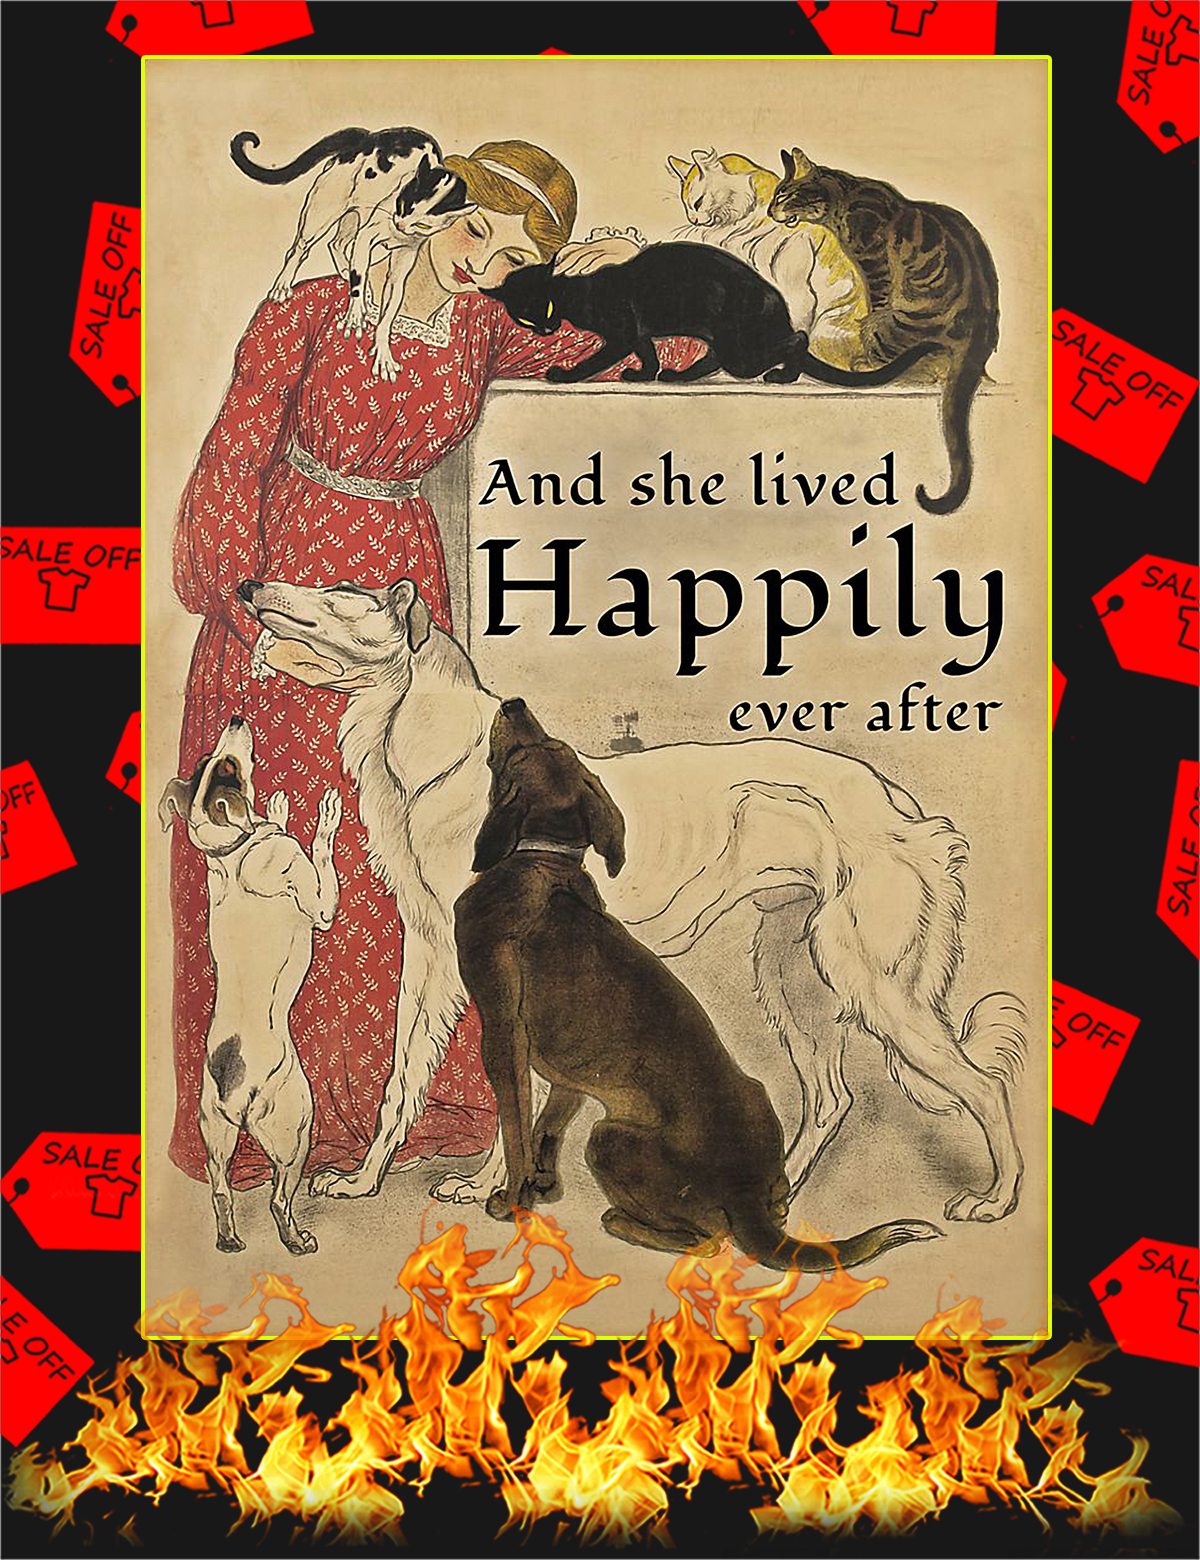 Dog and cat And she lived happily ever after poster